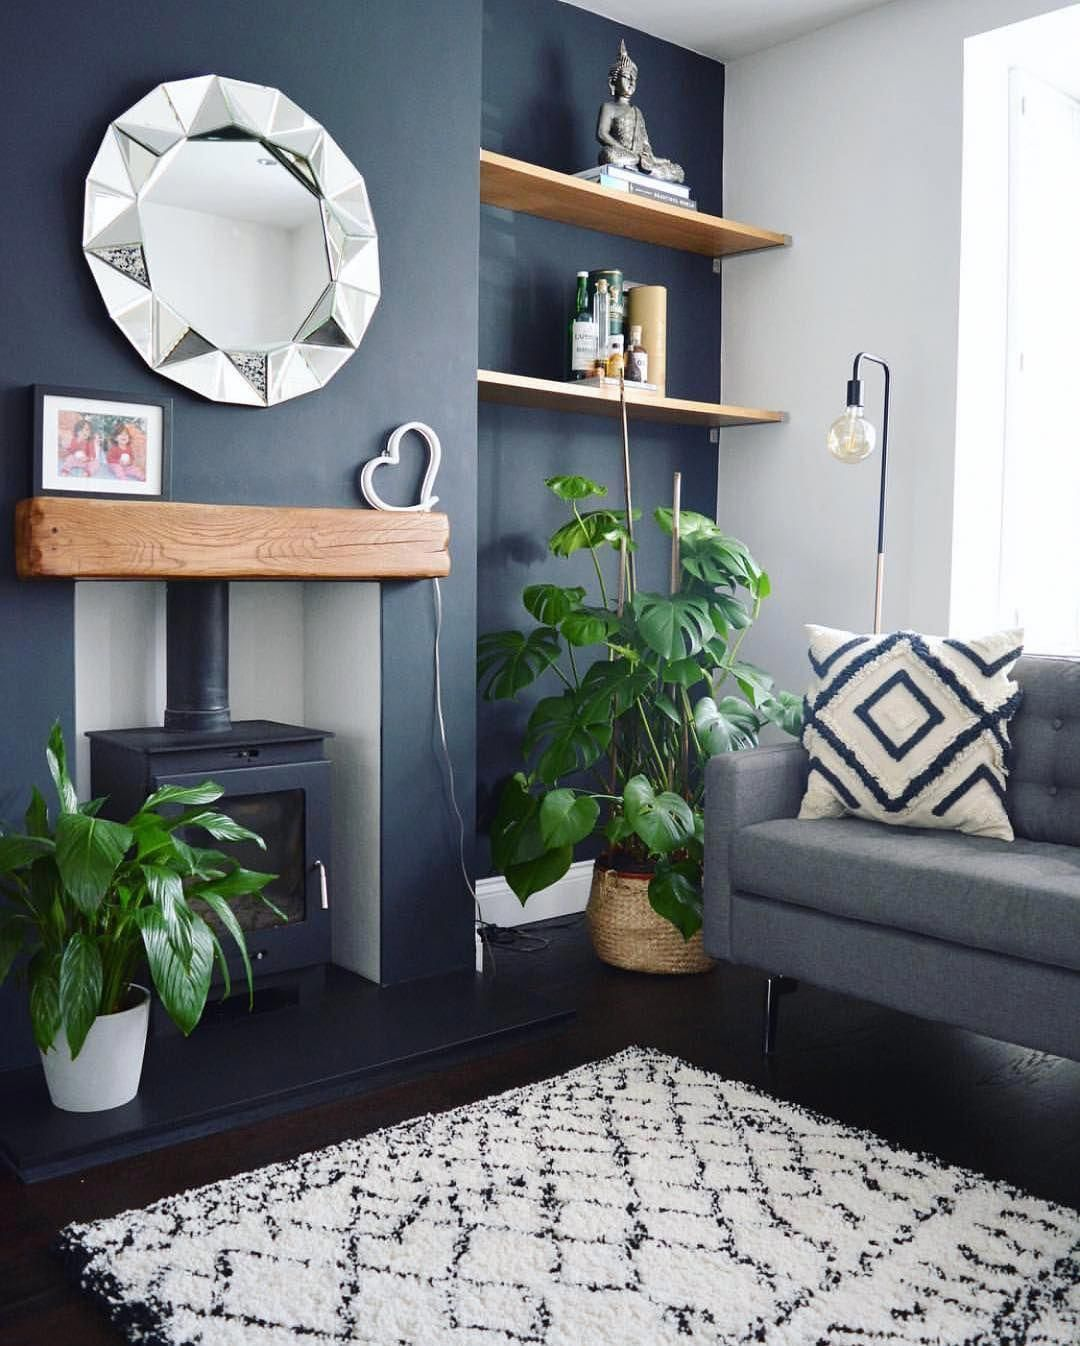 Ways To Get Farmhouse Style In Your House In My View Farmhouse Style Doesn T Intend You Living Room Decor Fireplace Living Room Decor Colors Blue Living Room View home living room color ideas